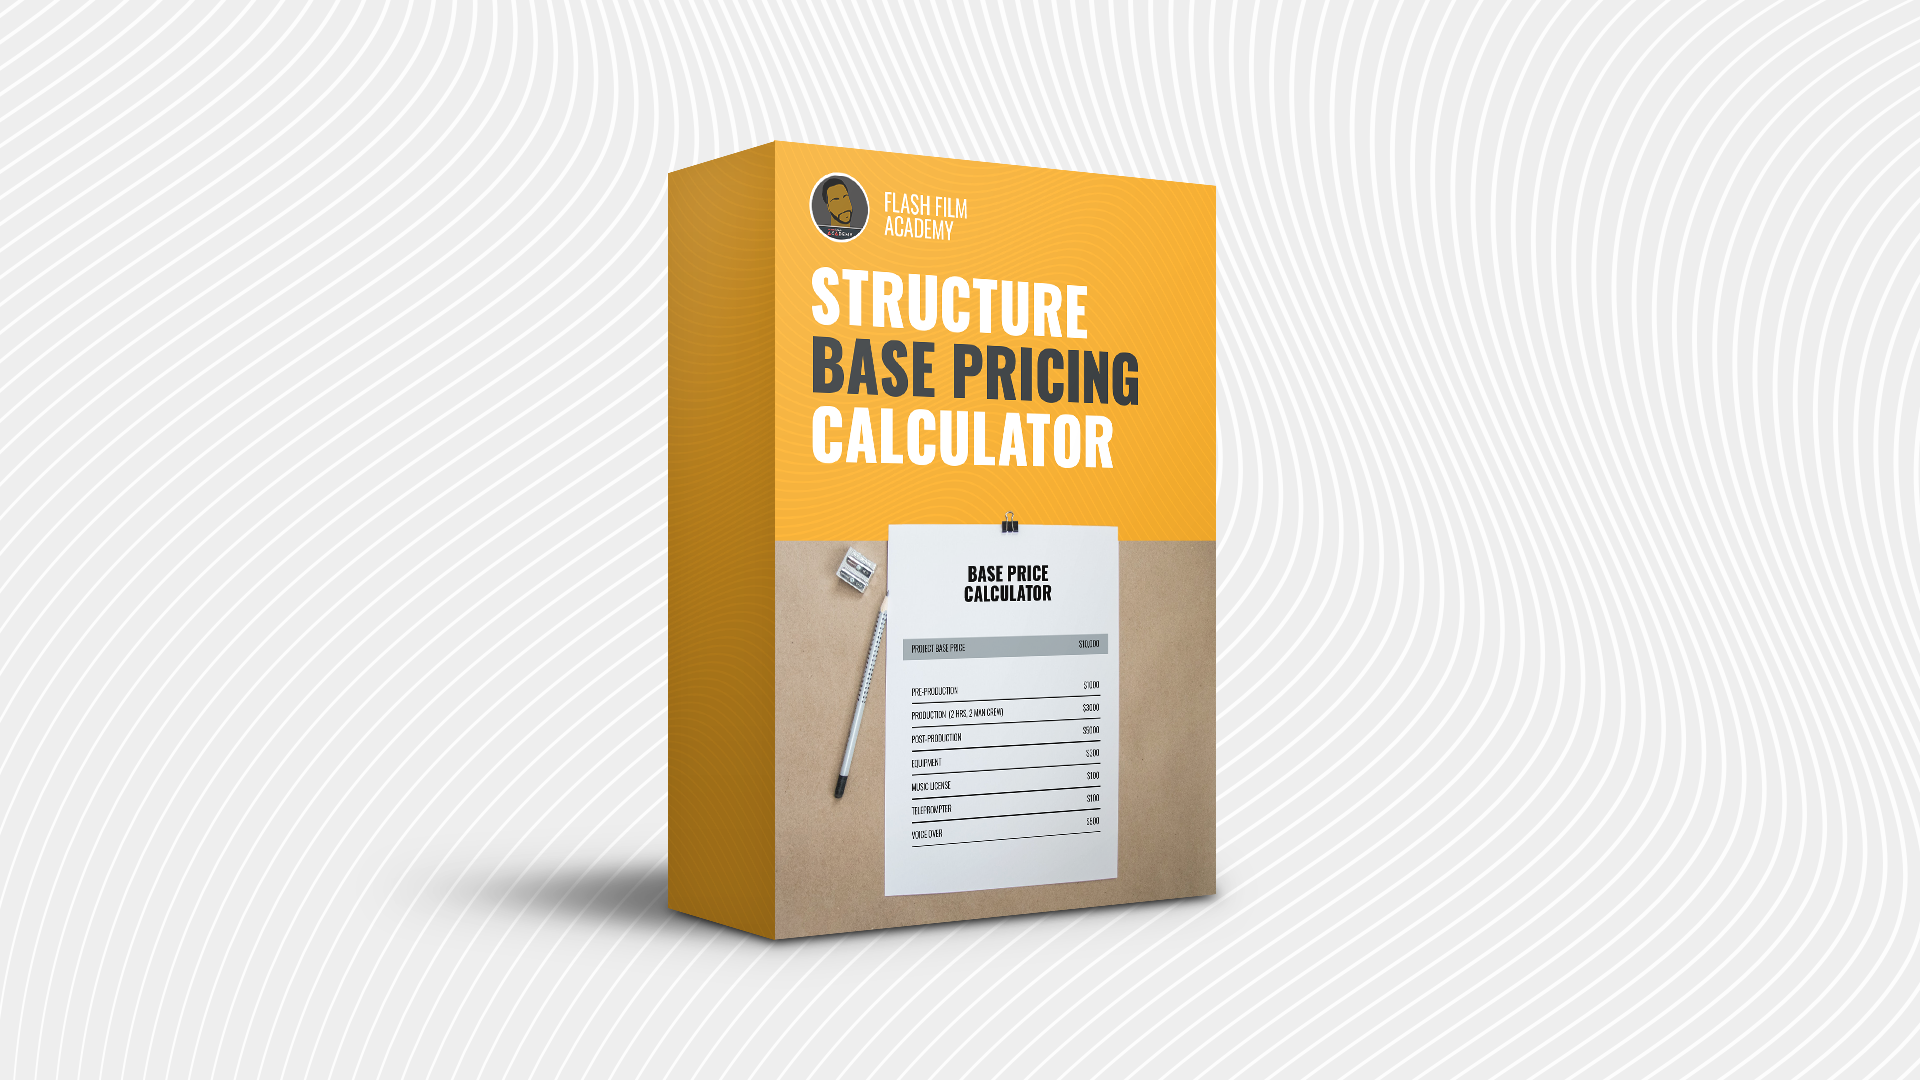 Structure Base Pricing Calculator